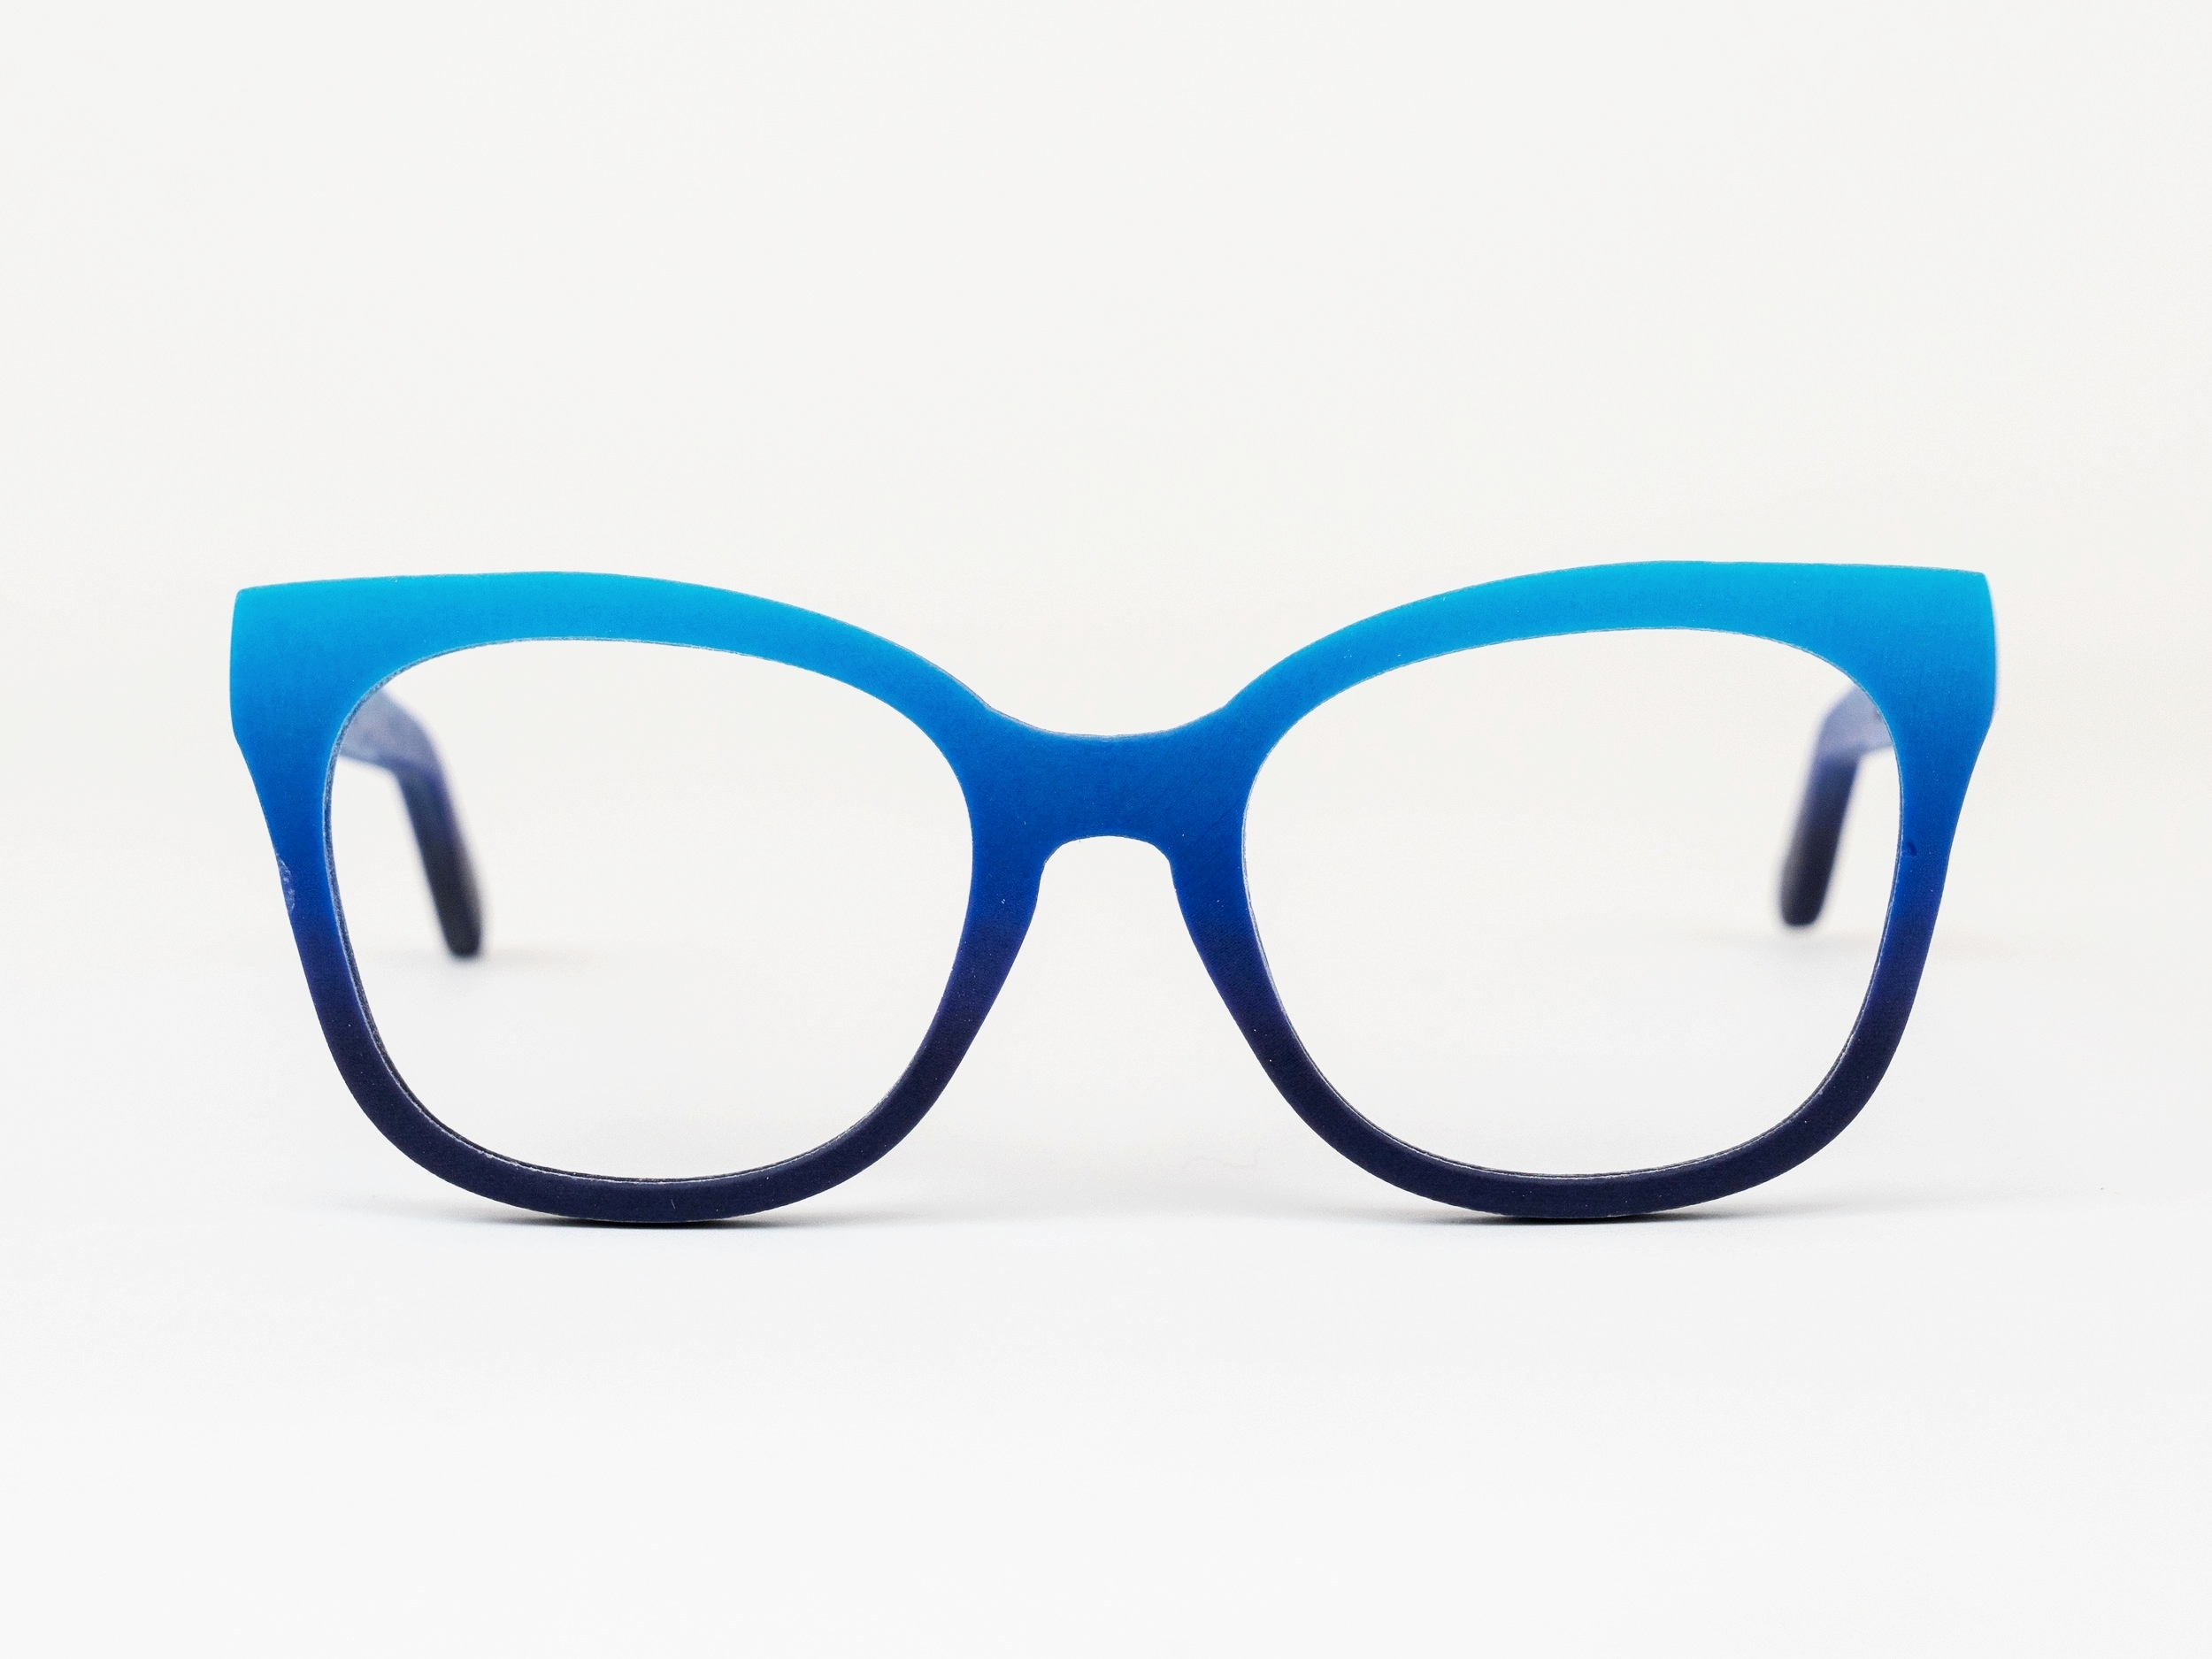 Carr - For those who defy convention. The Carr is a bold cat eye inspired by the original Canadian renegade and trailblazing artist.Available in any color or pattern that your heart desires.